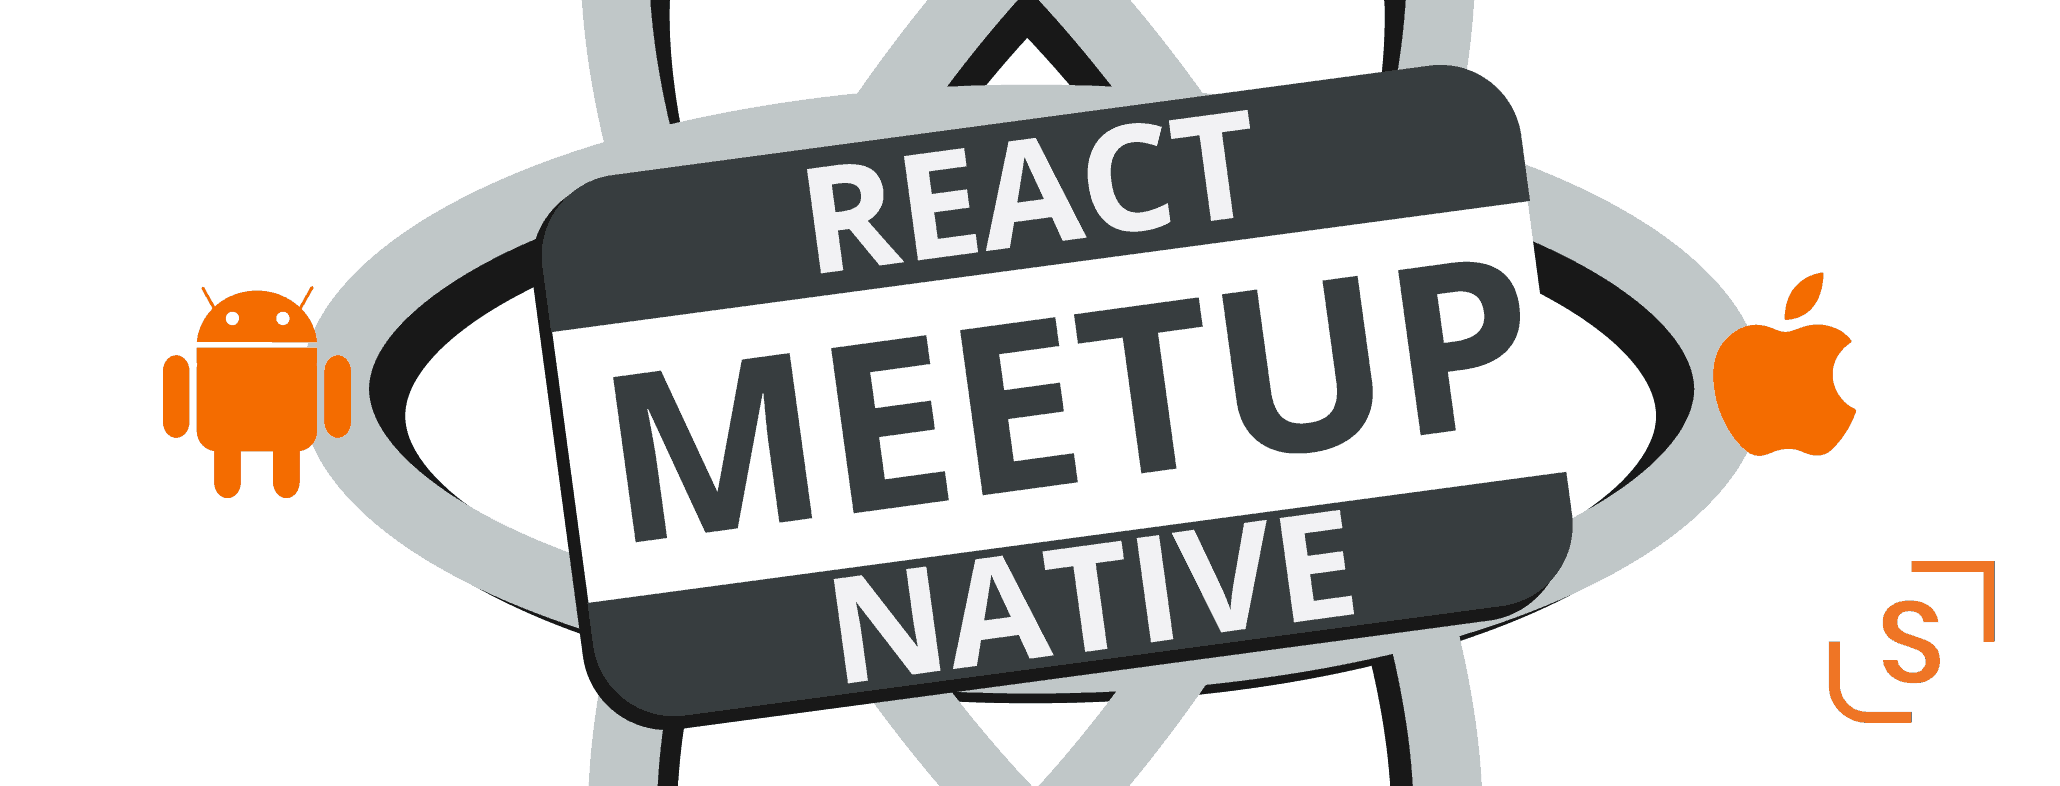 Shockoe's 1st Meet-Up: React Native